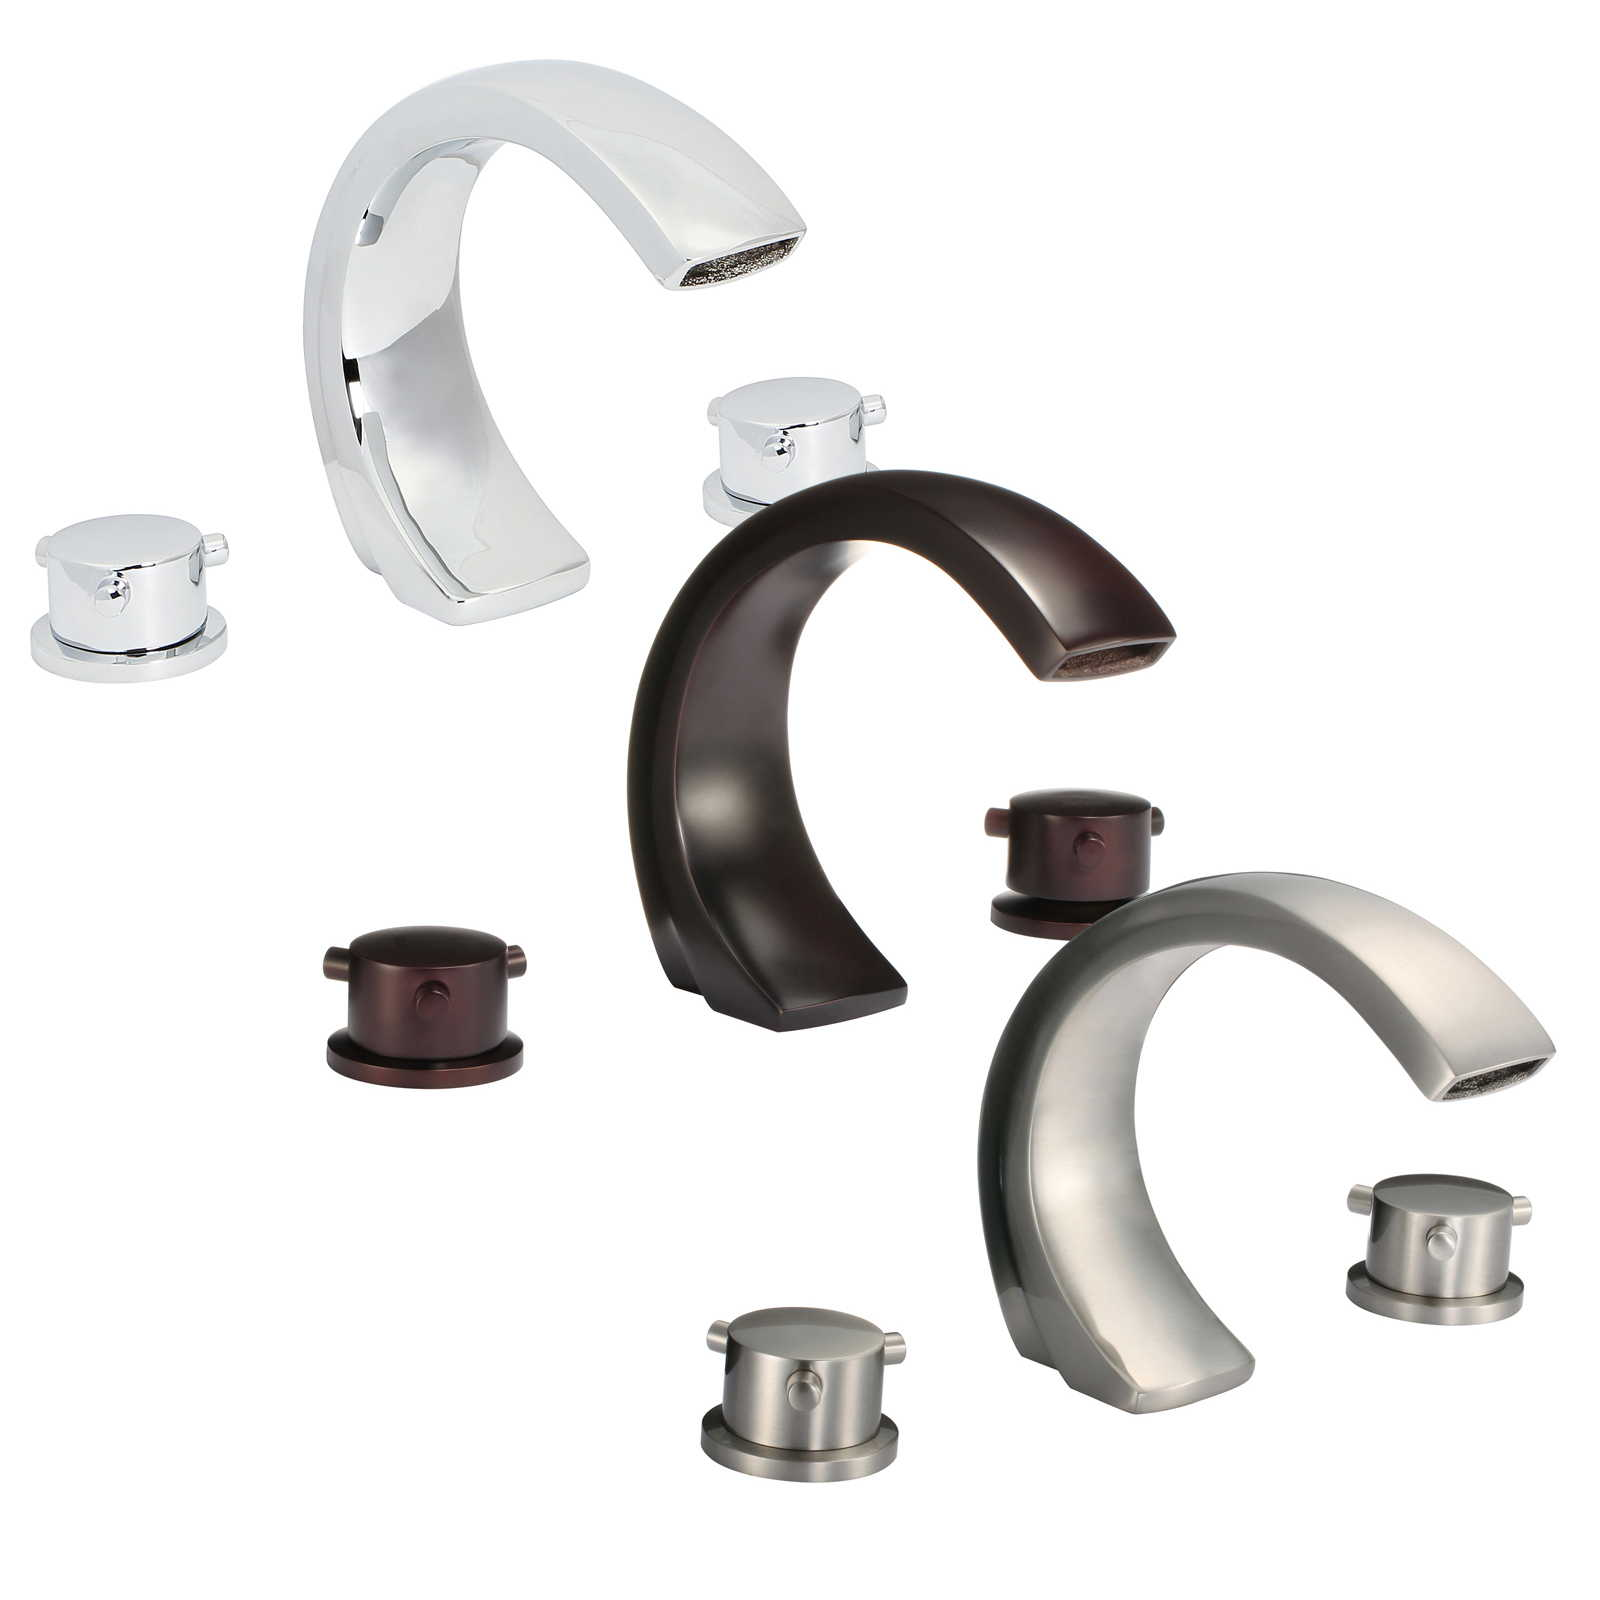 FREUER Curva Collection: Modern Spread Bathroom Sink Faucet - Multiple Finishes Available